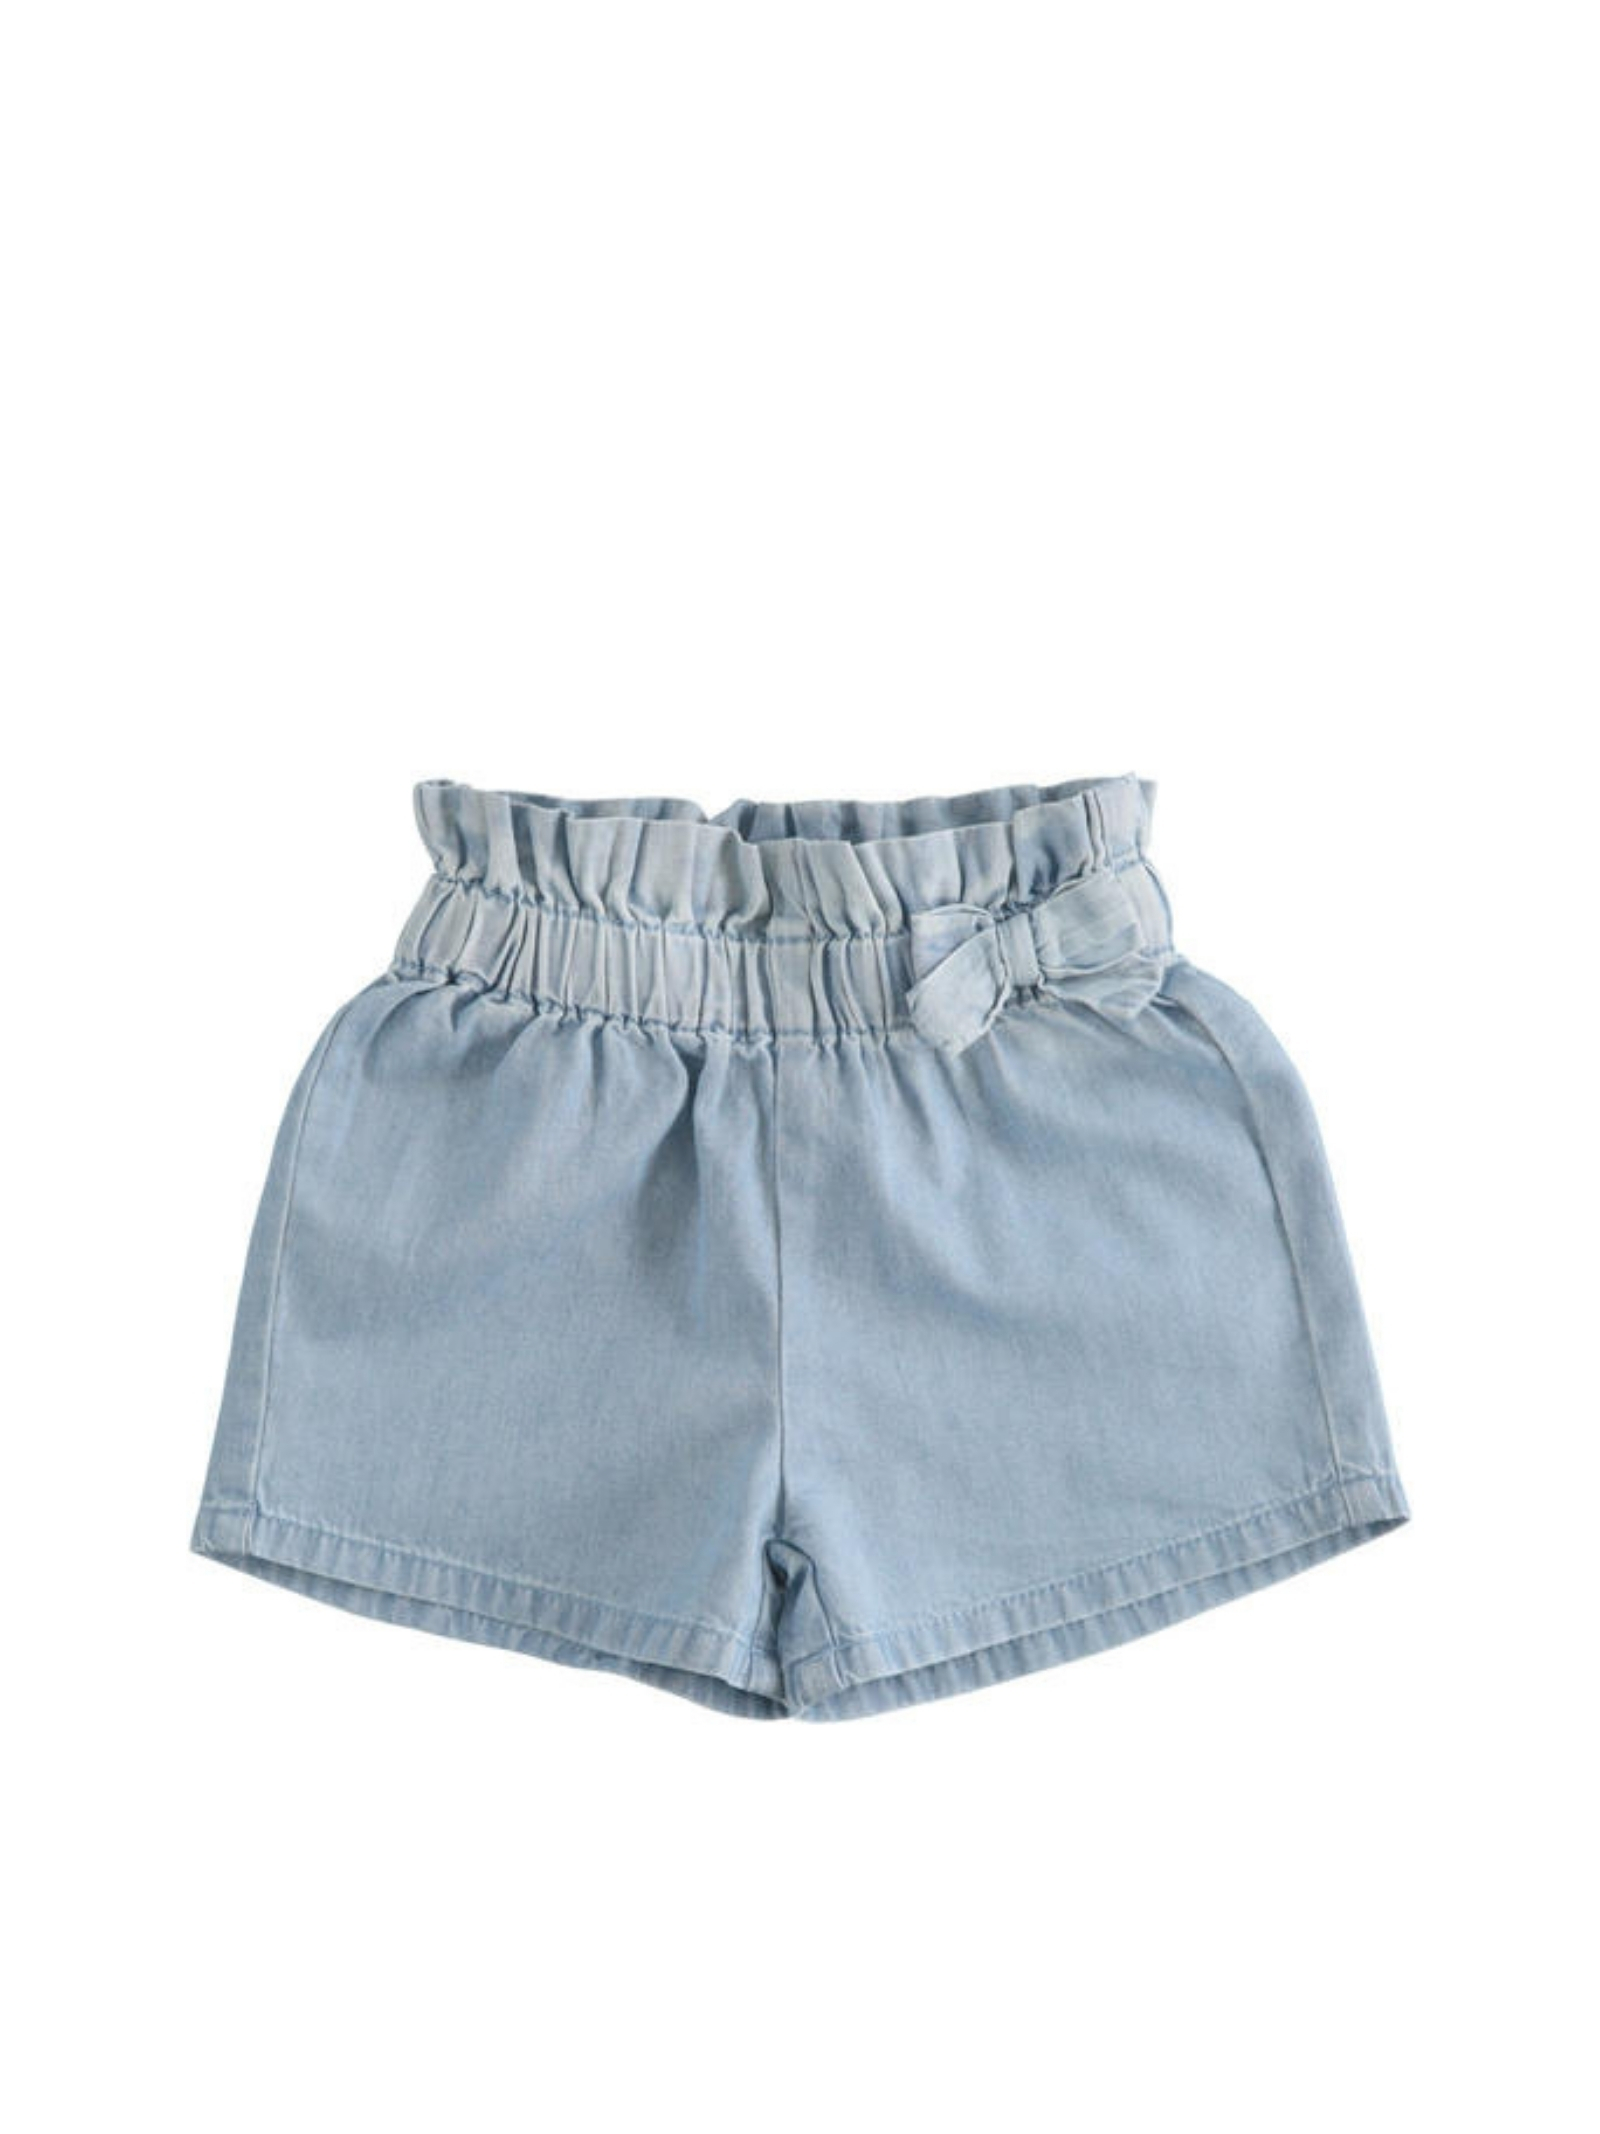 Short Denim MINIBANDA | Shorts | 32744007310